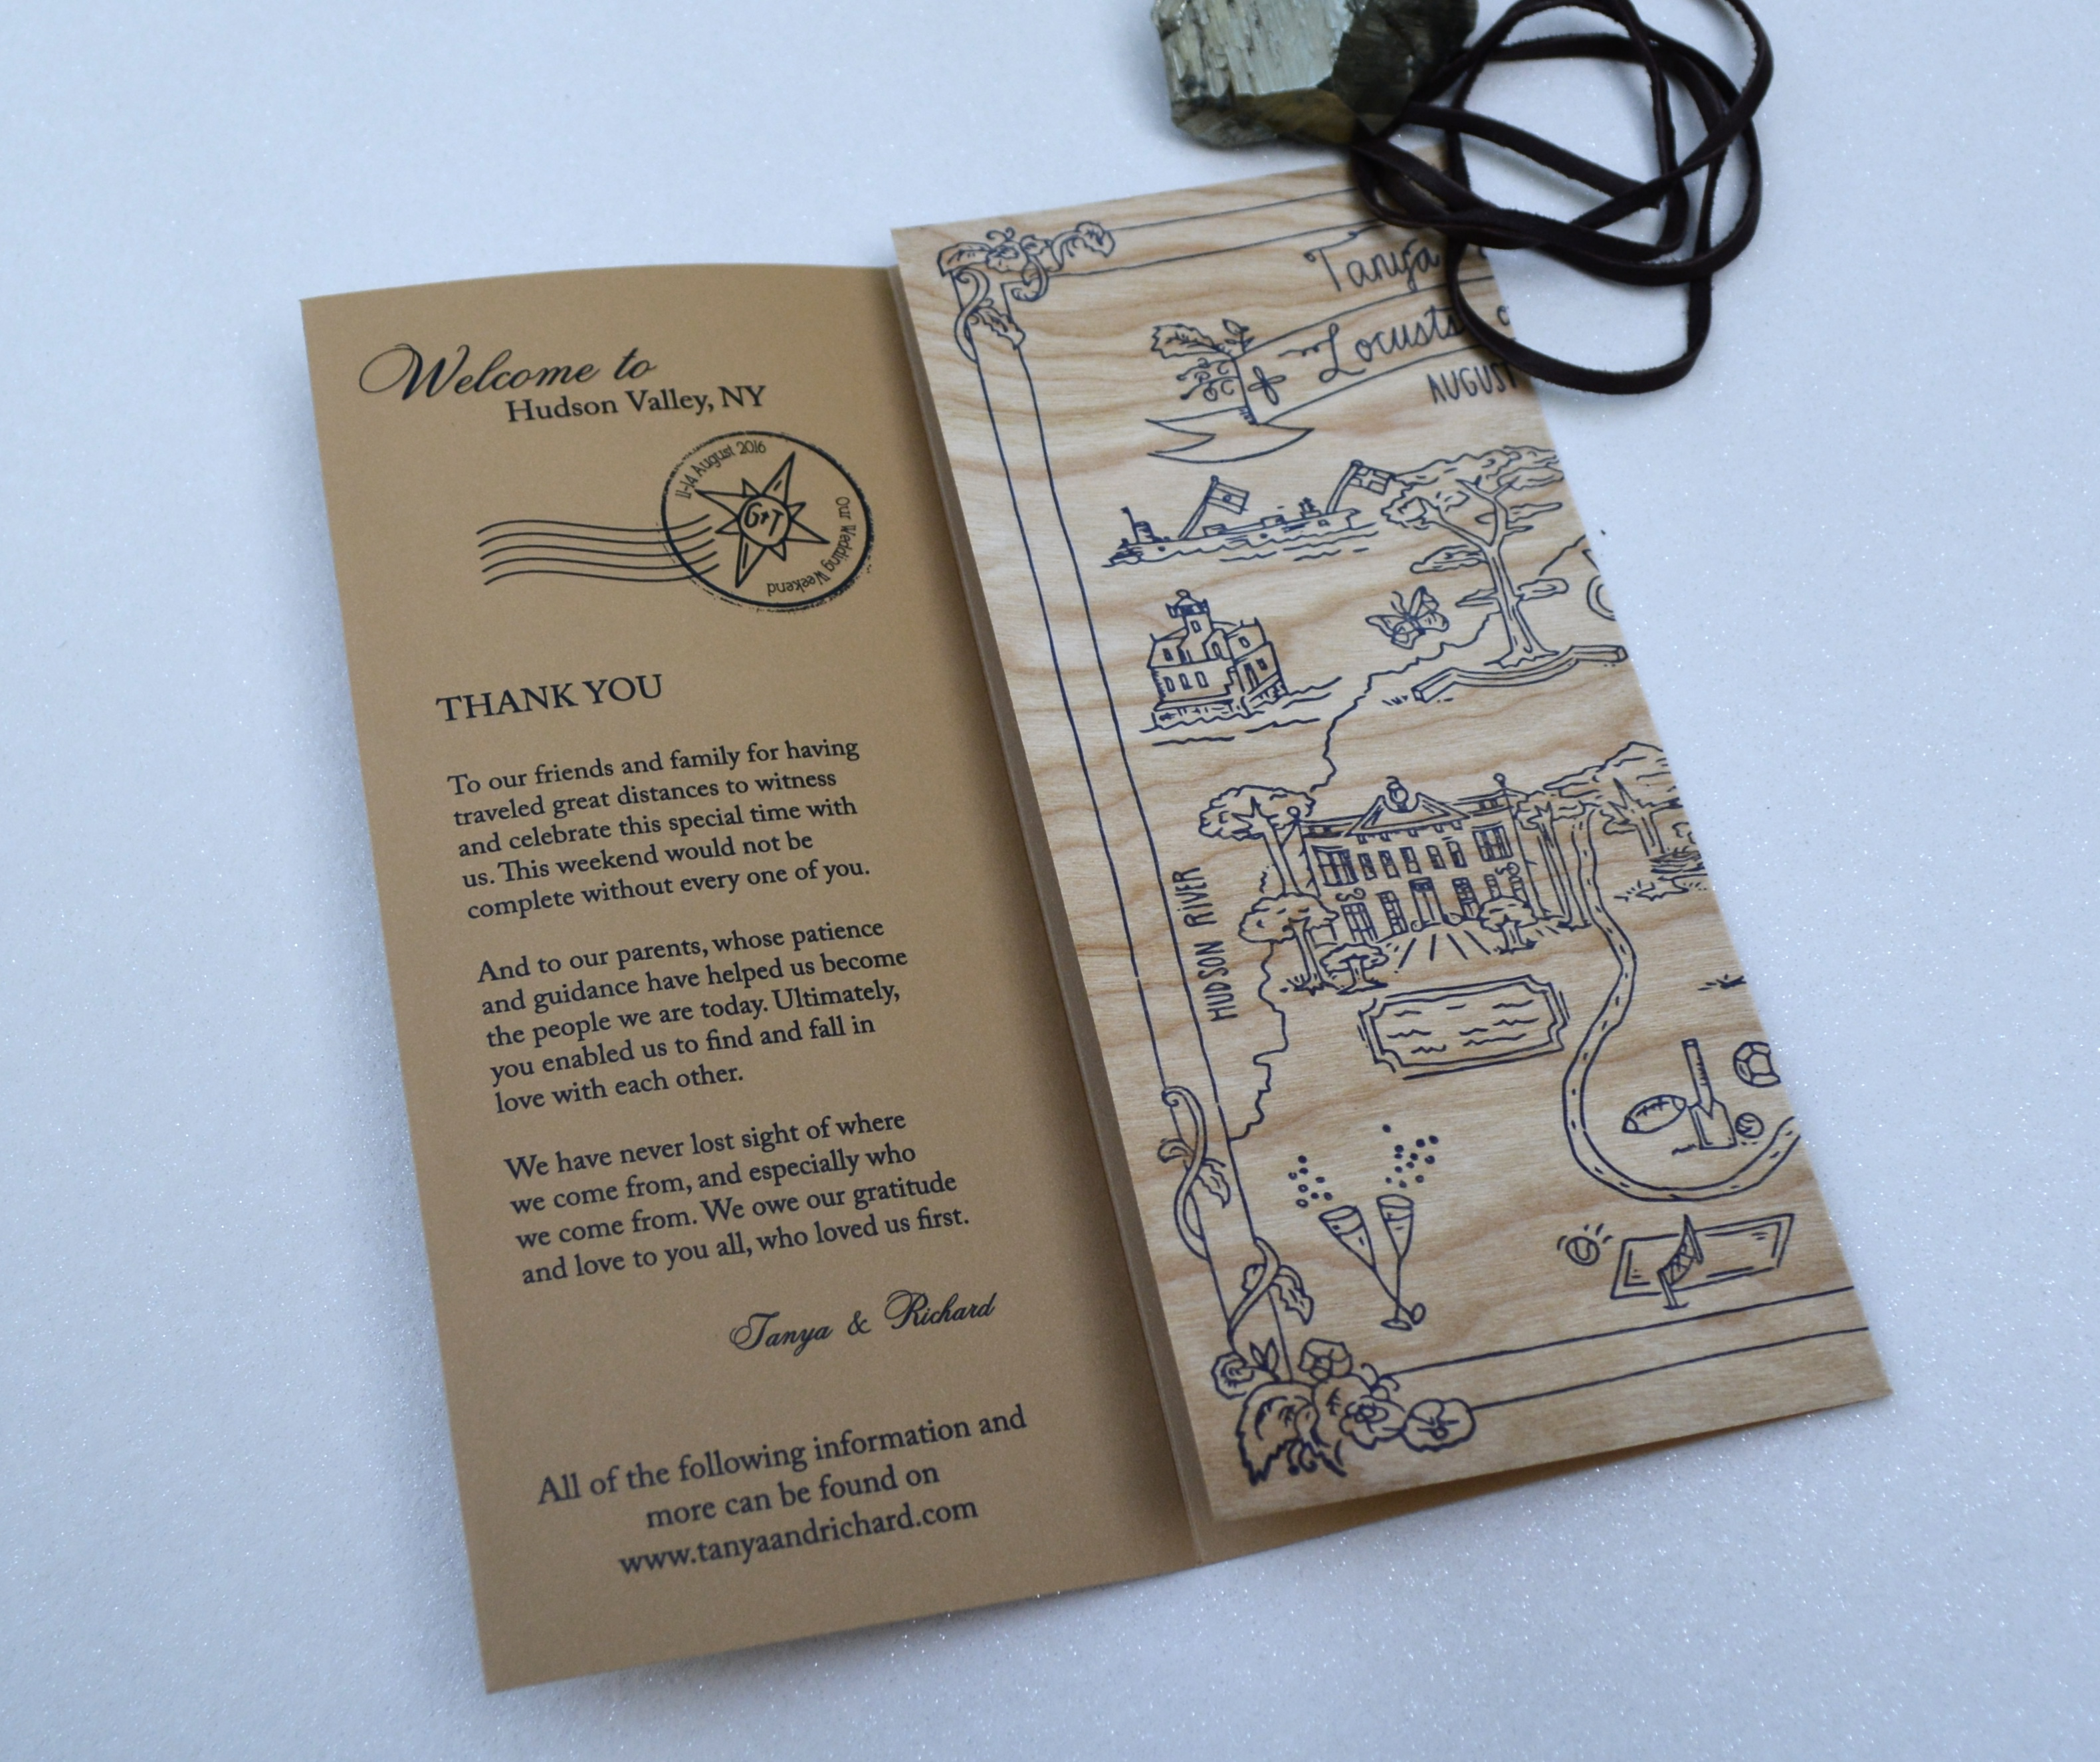 Wedding-weekend-itinerary-printed-on-wood-paper-by-lucky-invitations